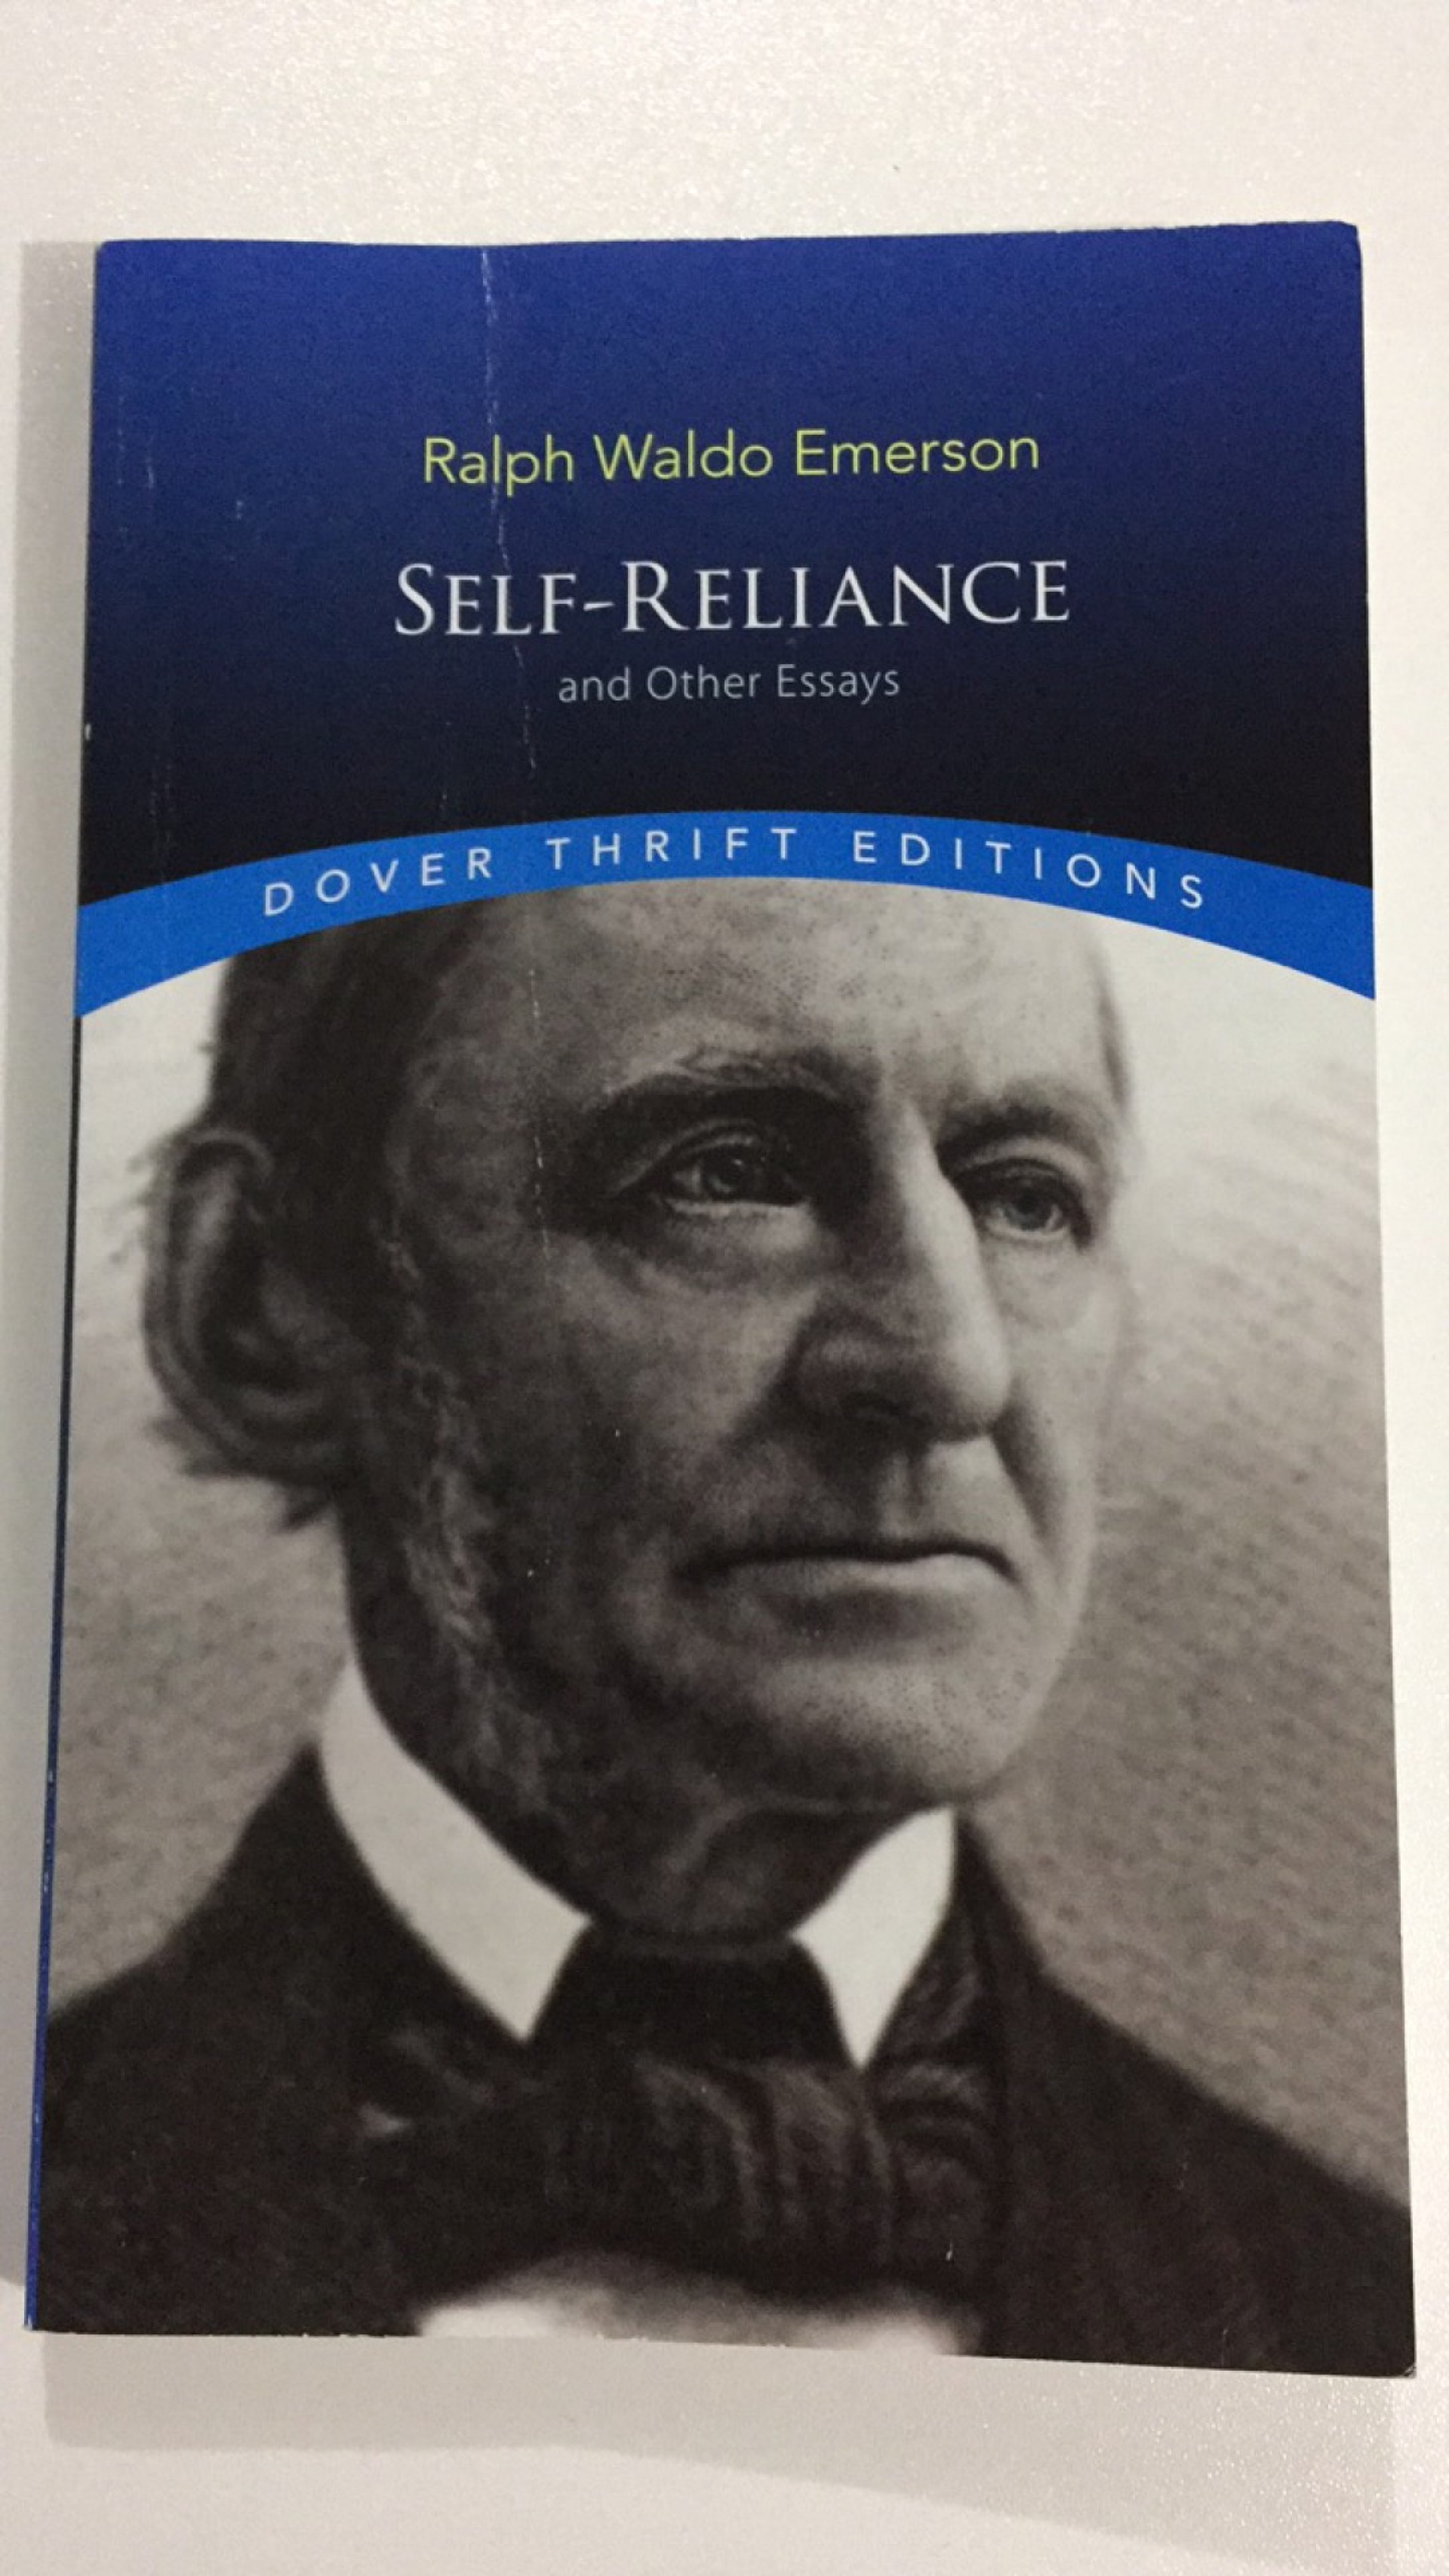 003 Self Reliance And Other Essays Essay Example By Ralph Waldo Emerson Formidable Pdf Ekşi 1920